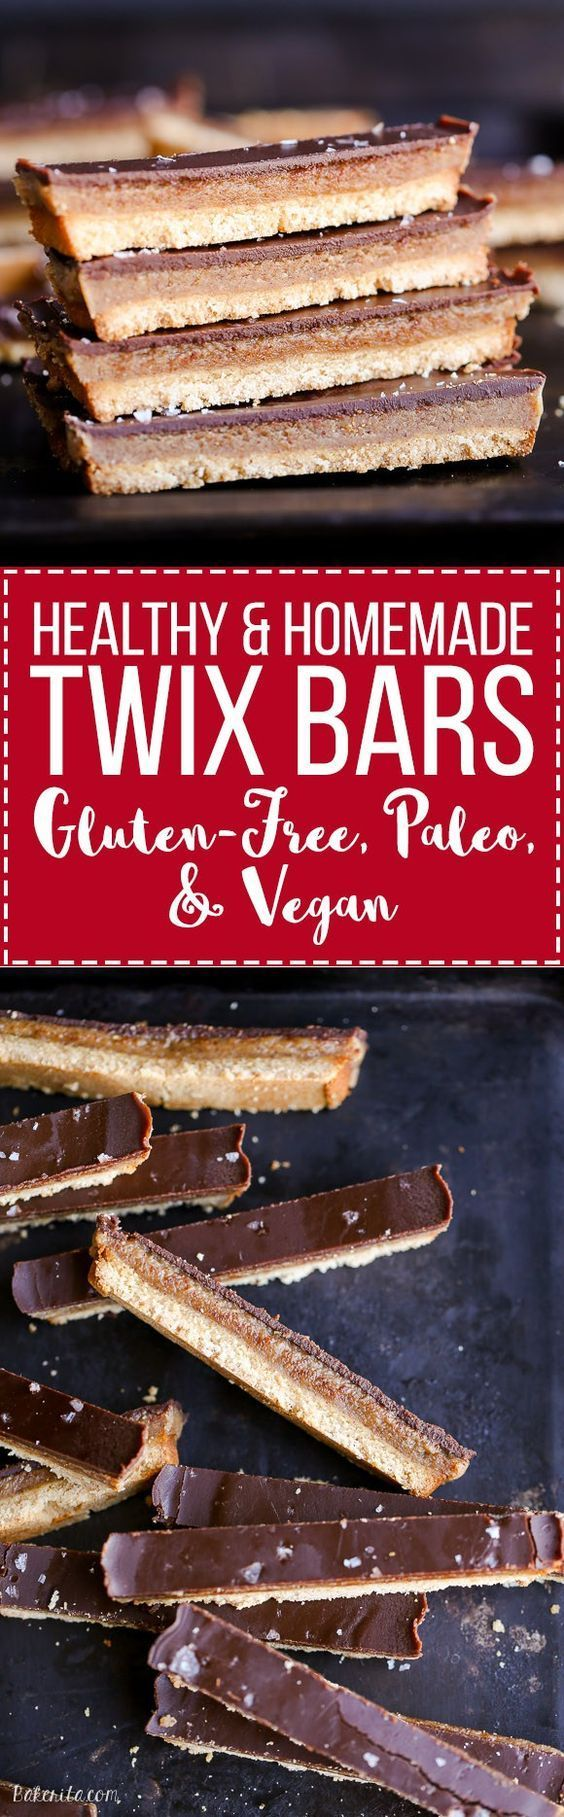 This recipe for healthy homemade Twix Bars is a game changer! When you take a bite you won't believe that this candy bar copycat is gluten-free refined sugar free Paleo and vegan.